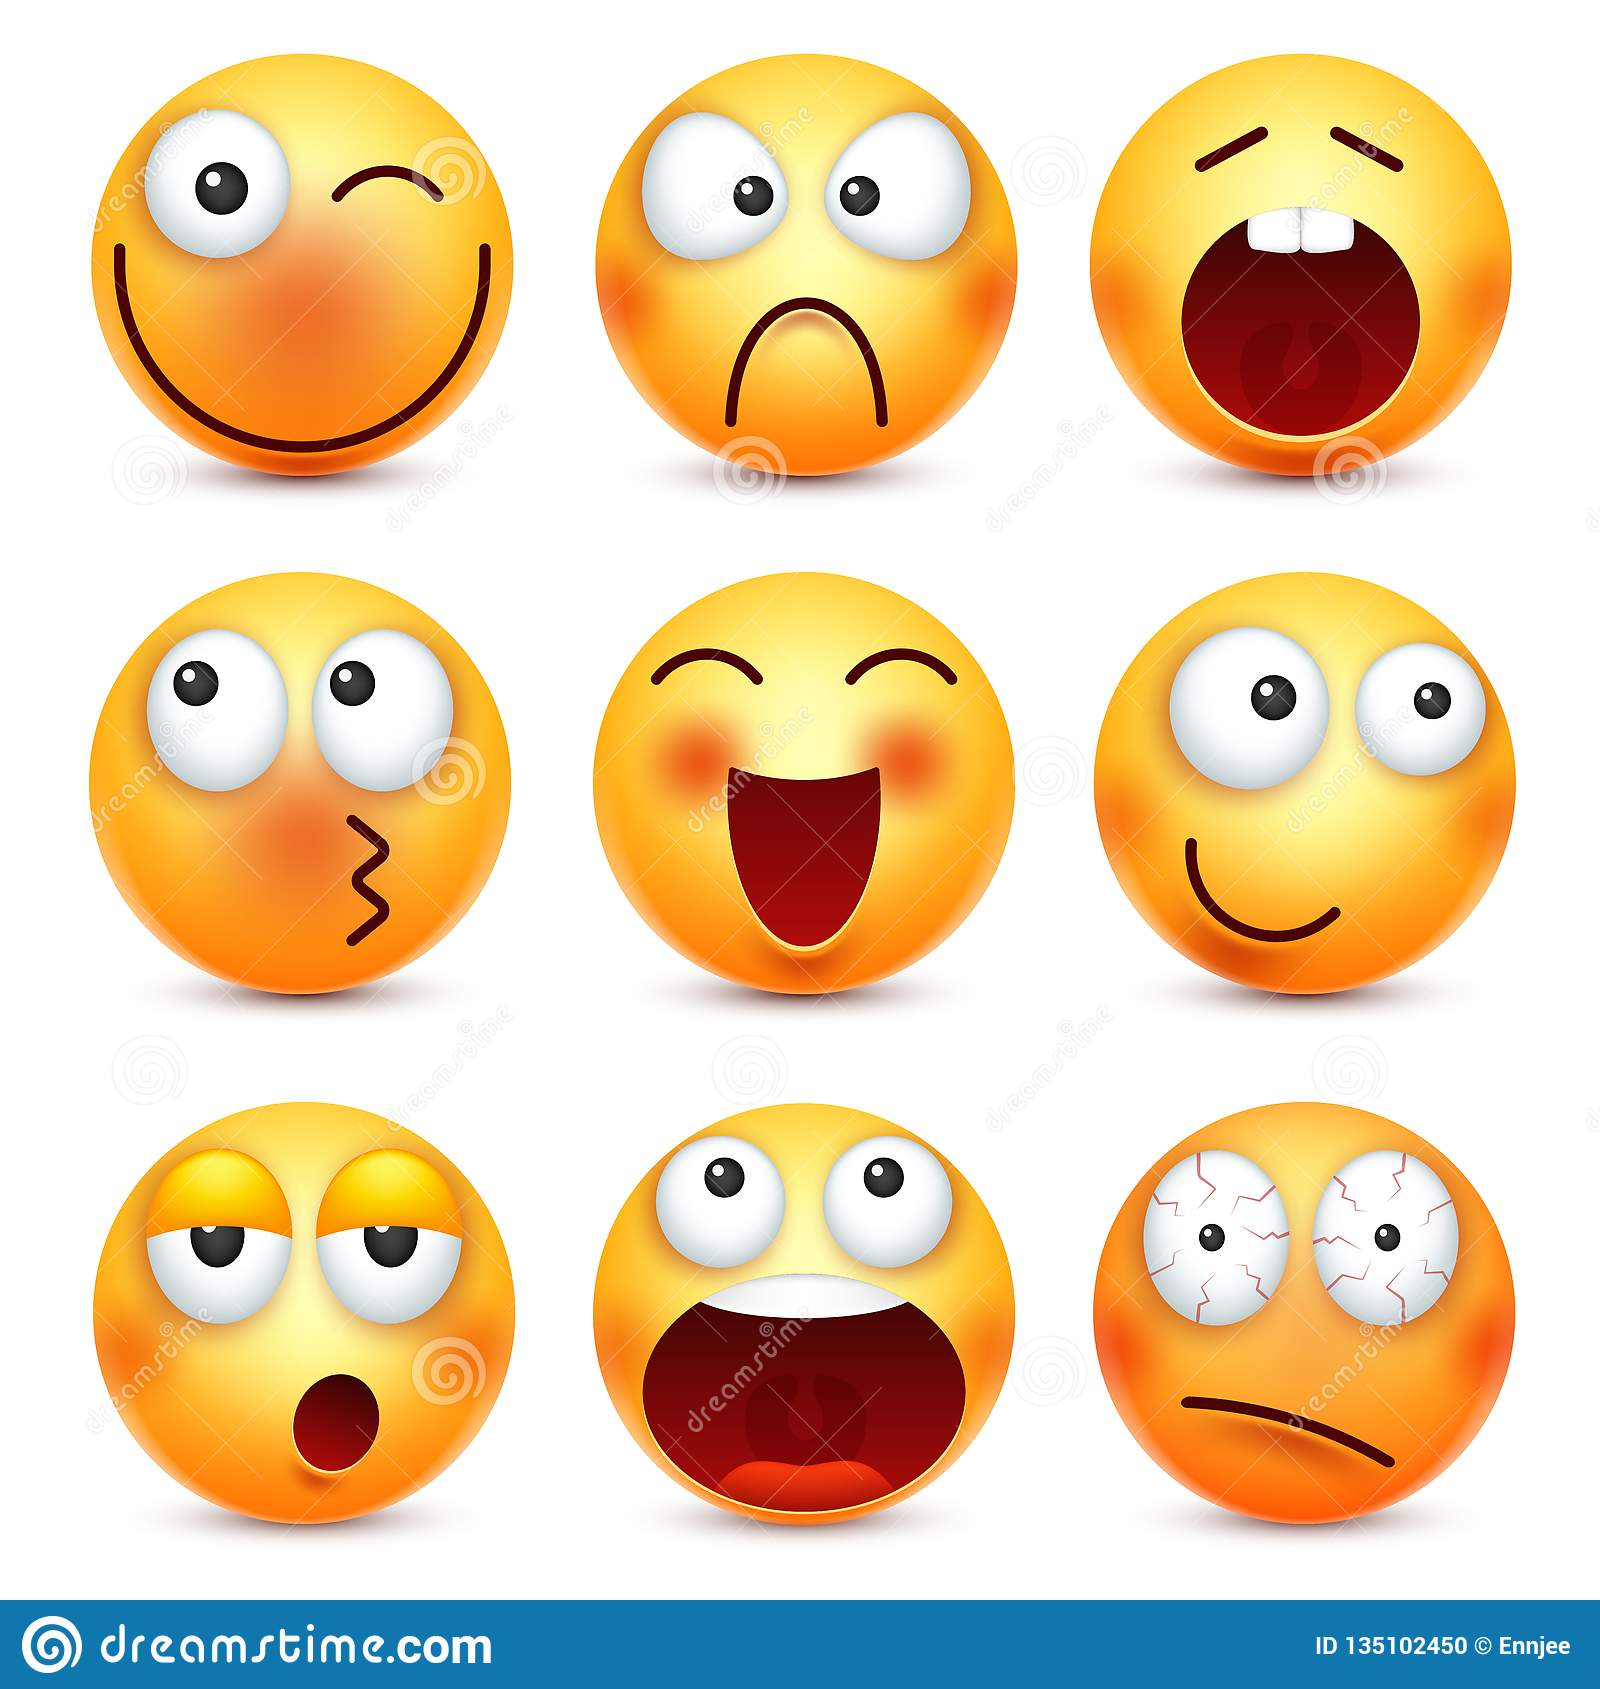 Smiley Emoticon Set Yellow Face With Emotions Mood